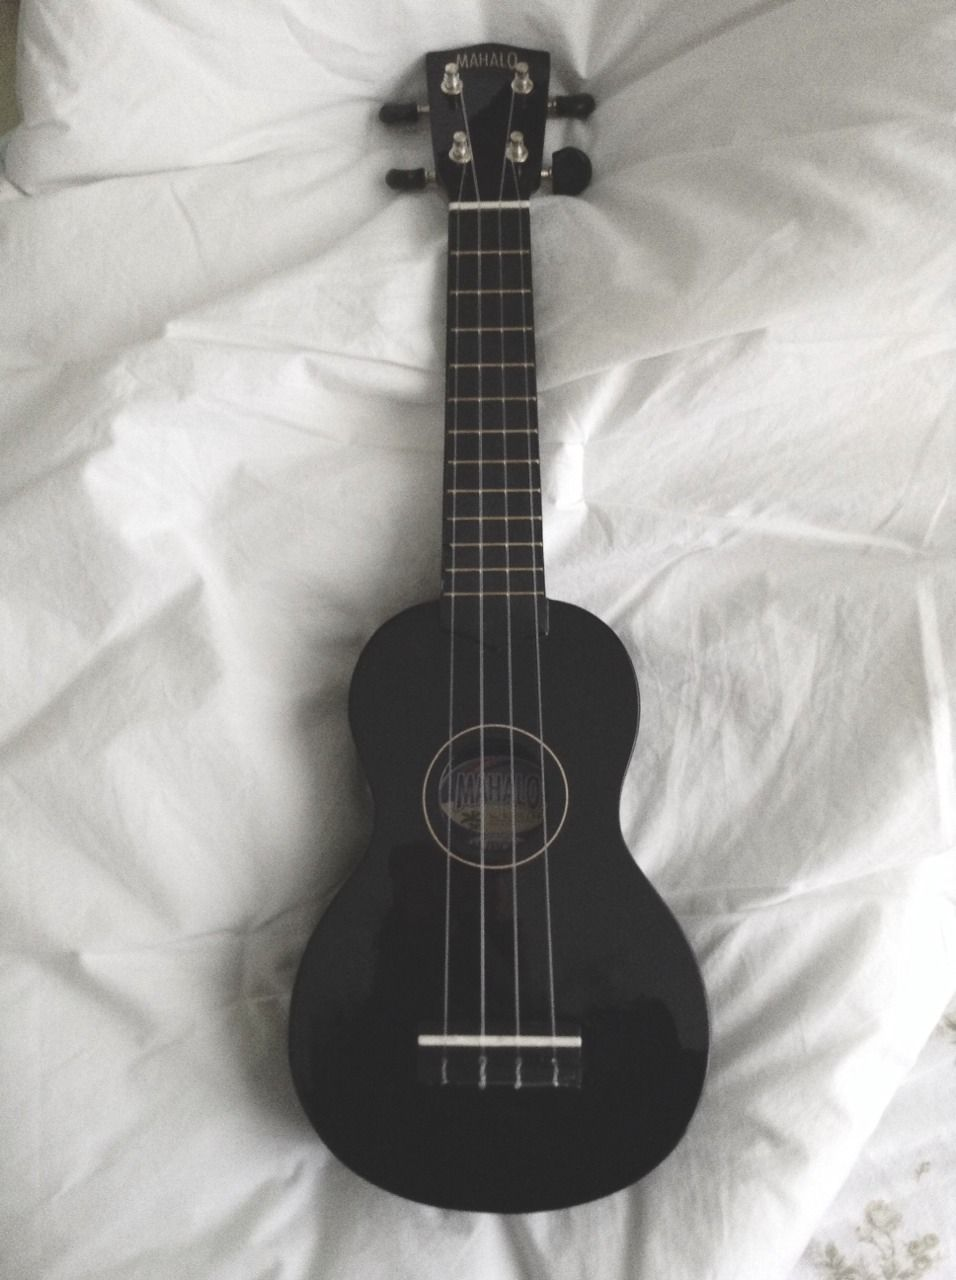 I don t know how to play a ukulele and I don t need it either but I wanted  it so I ordered it last night and im really happy but I feel stupid ... f96bf84ccb